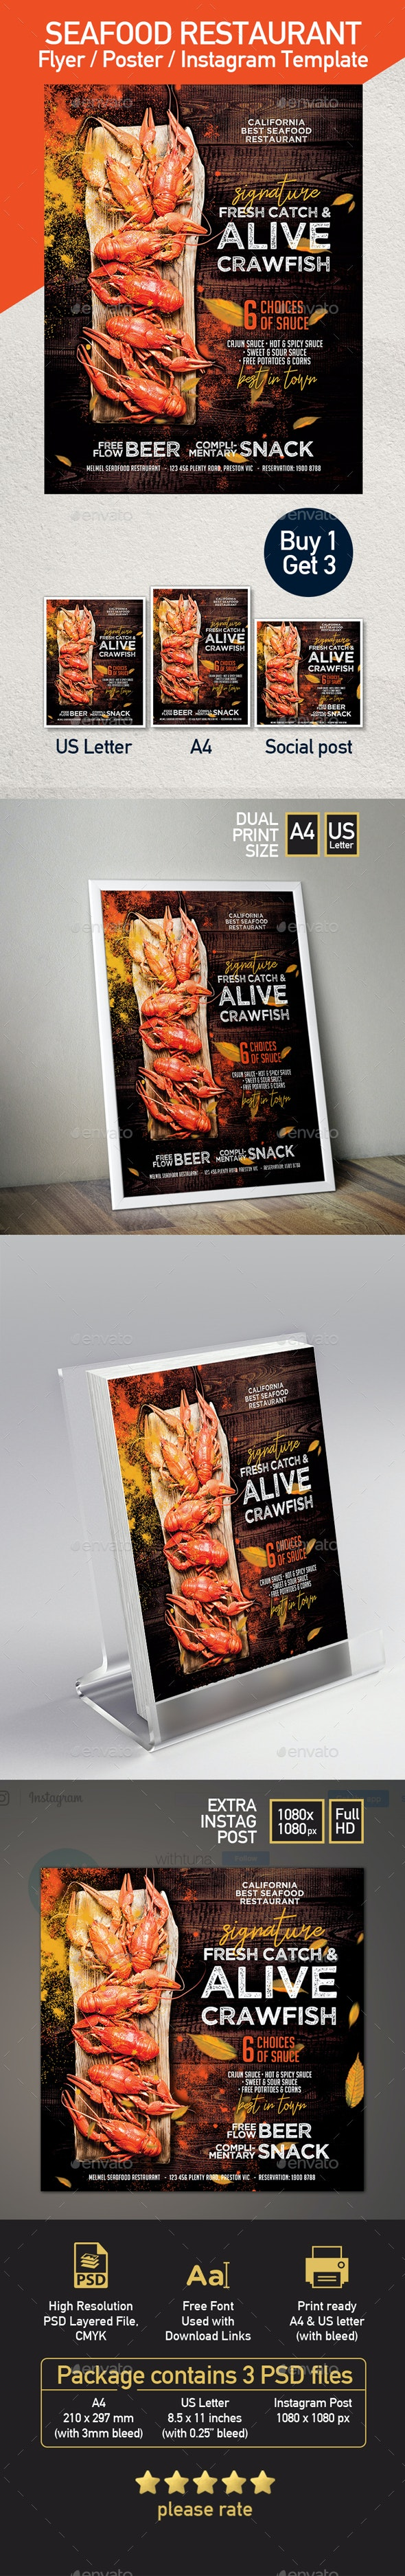 Crawfish Template for Flyer or Poster - Restaurant Flyers